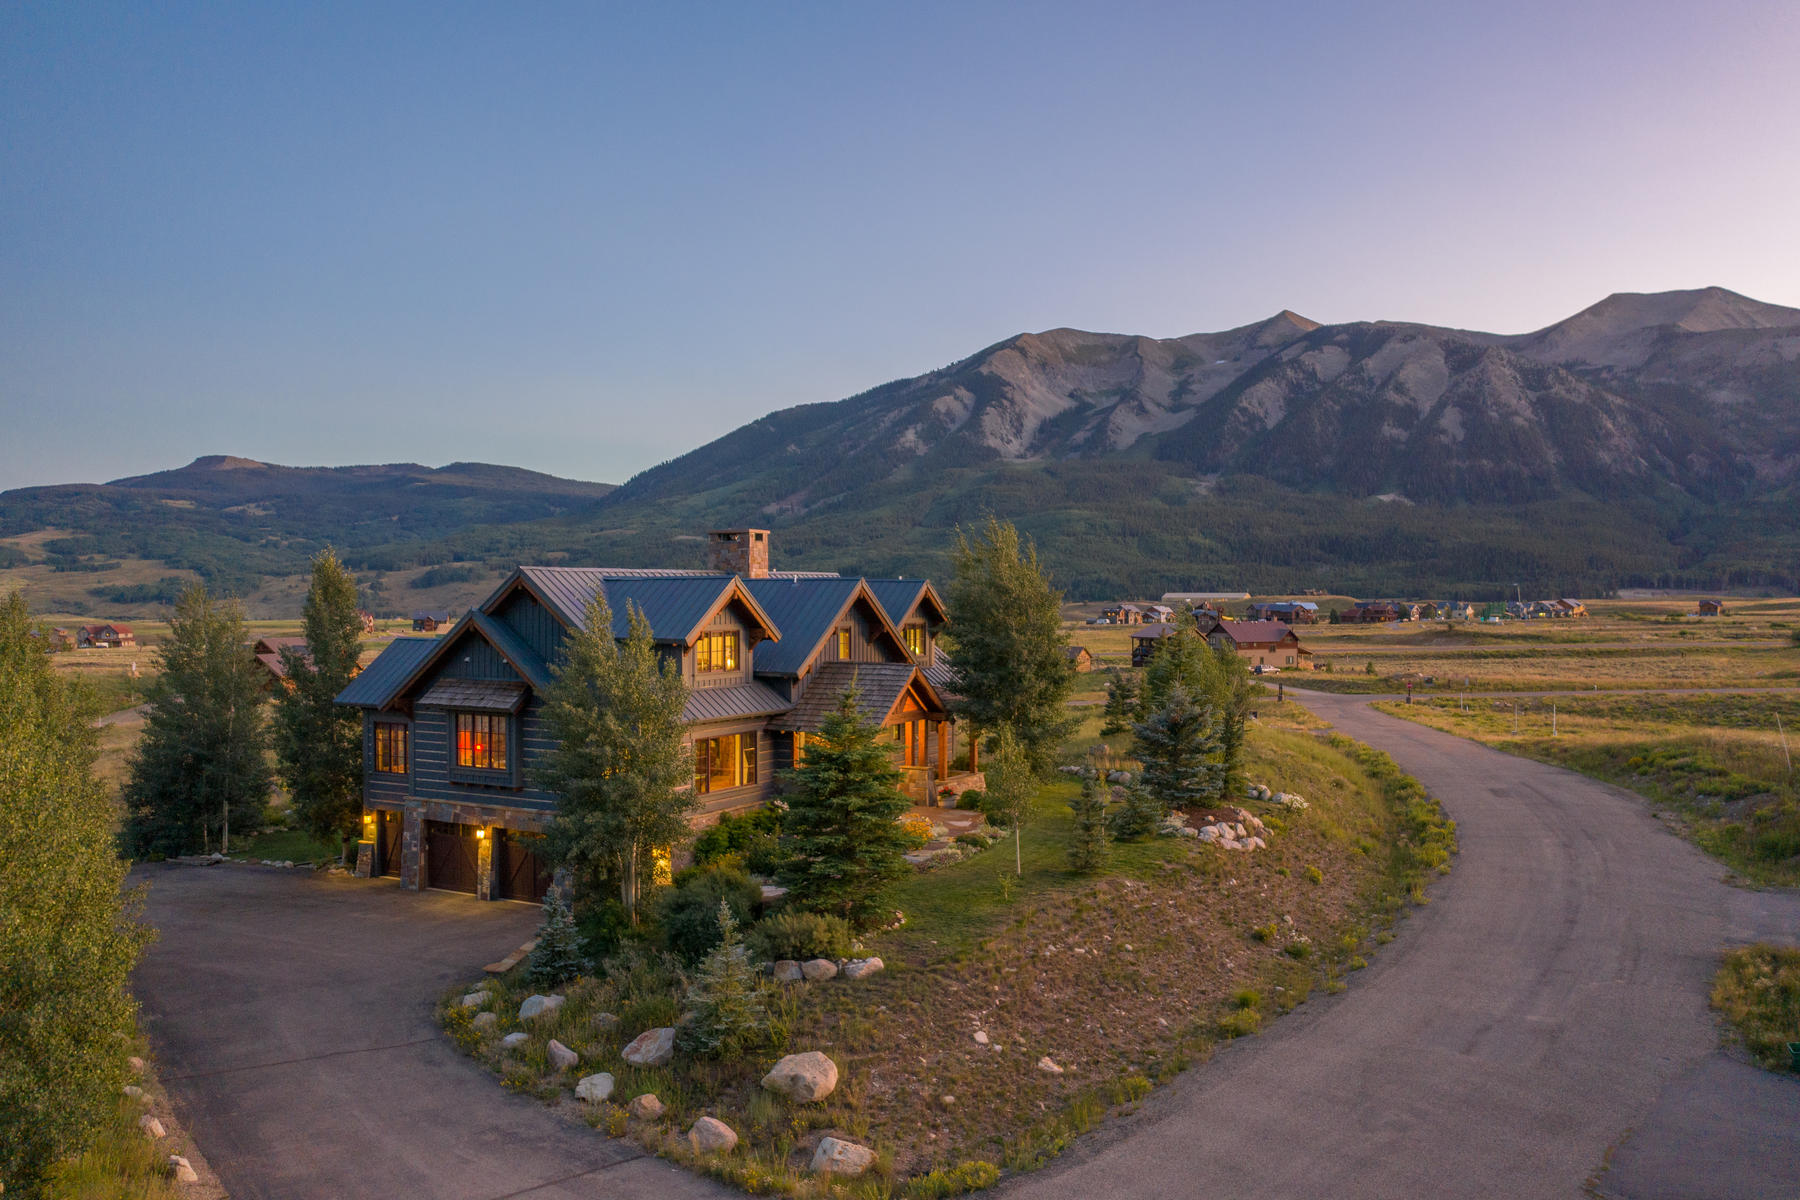 Single Family Homes for Sale at Immaculate Home with Spectacular Views 33 Buckhorn Way Crested Butte, Colorado 81224 United States